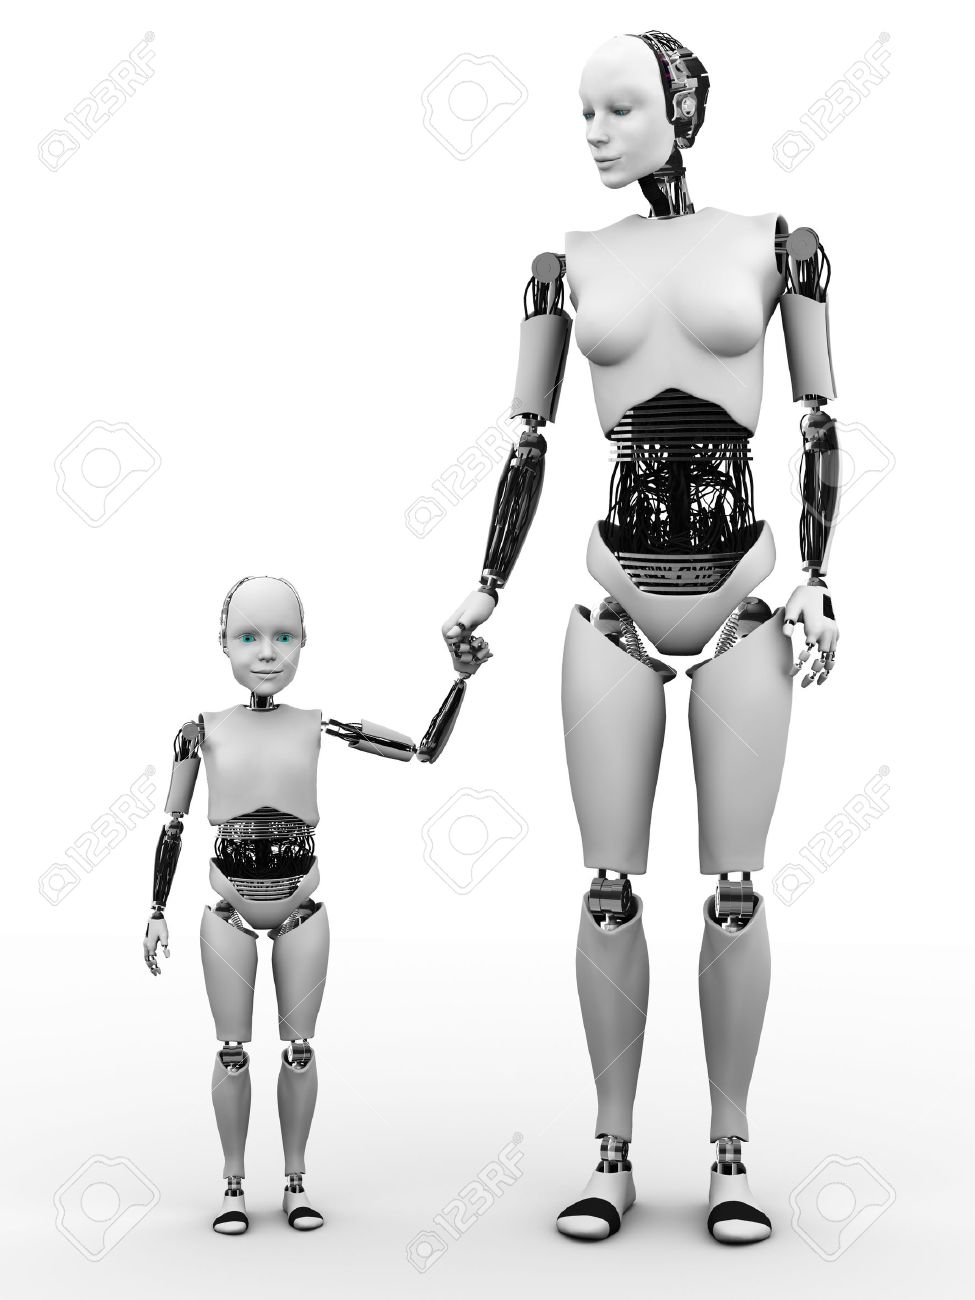 A robot woman holding hand with her robot child. White background. Stock Photo - 12020235